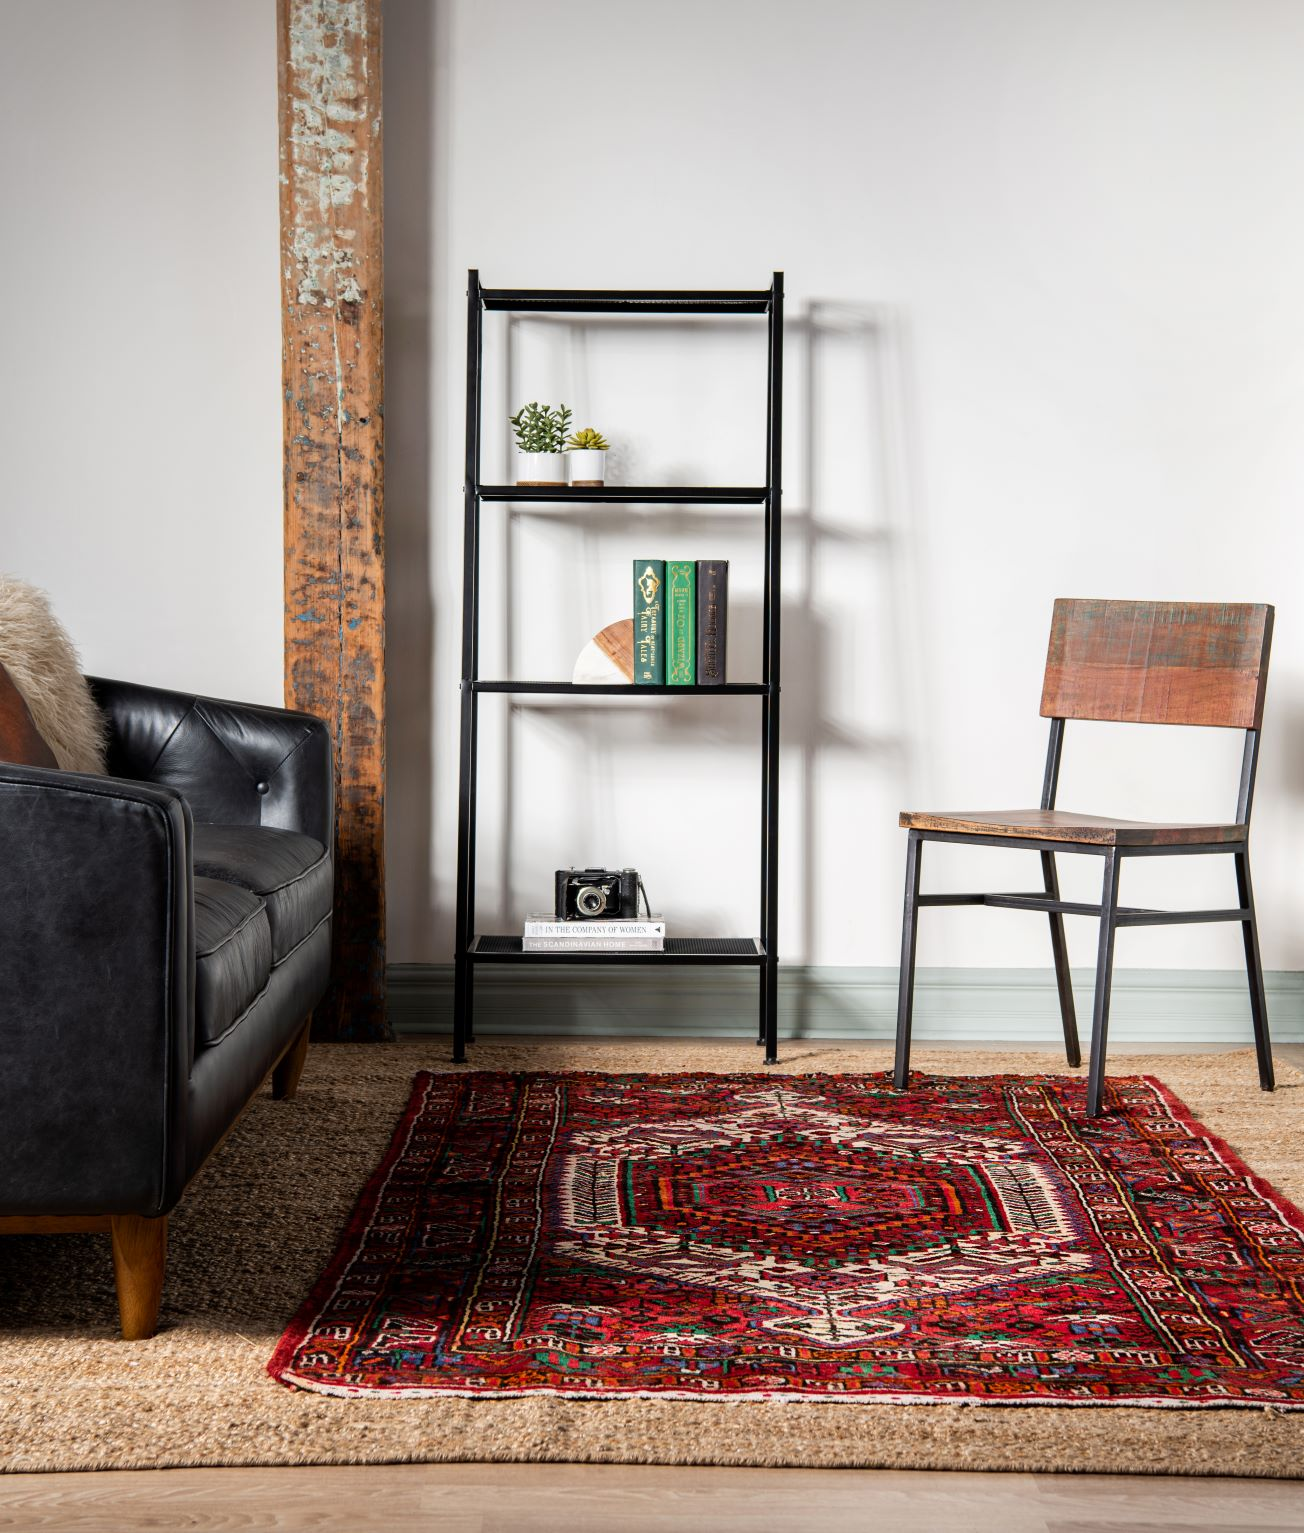 Example of layered rugs in living room